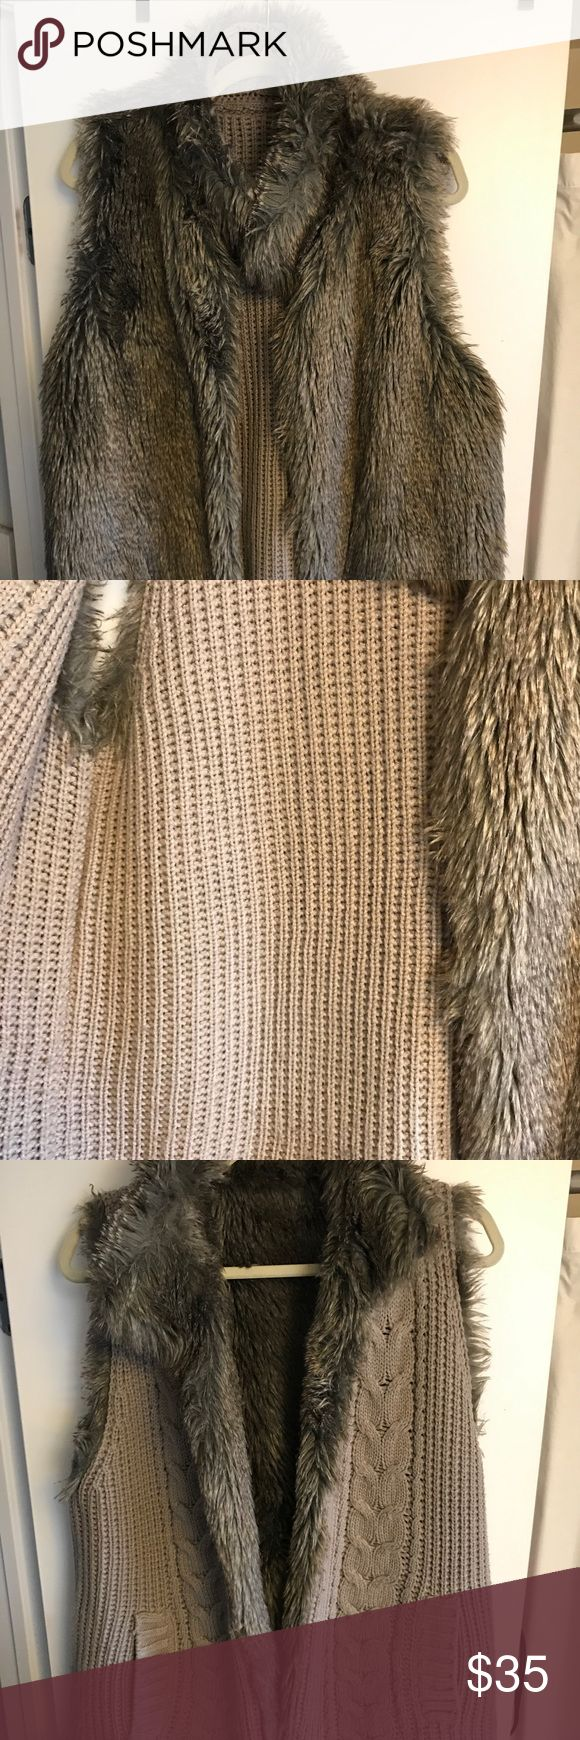 REVERSIBLE fur vest with POCKETS 🙏🏼🤗 Long fur vest in a pretty ash grey / brown color, lined with a sweater material so that you can wear 2 ways! This is the best fur vest I've ever owned. Not too bulky, but warm and really great quality 👍🏼... Well done Bloomingdales. Cute with grey jeans and booties, or over a dress with sleeves. Would fit a S-L Aqua Jackets & Coats Vests